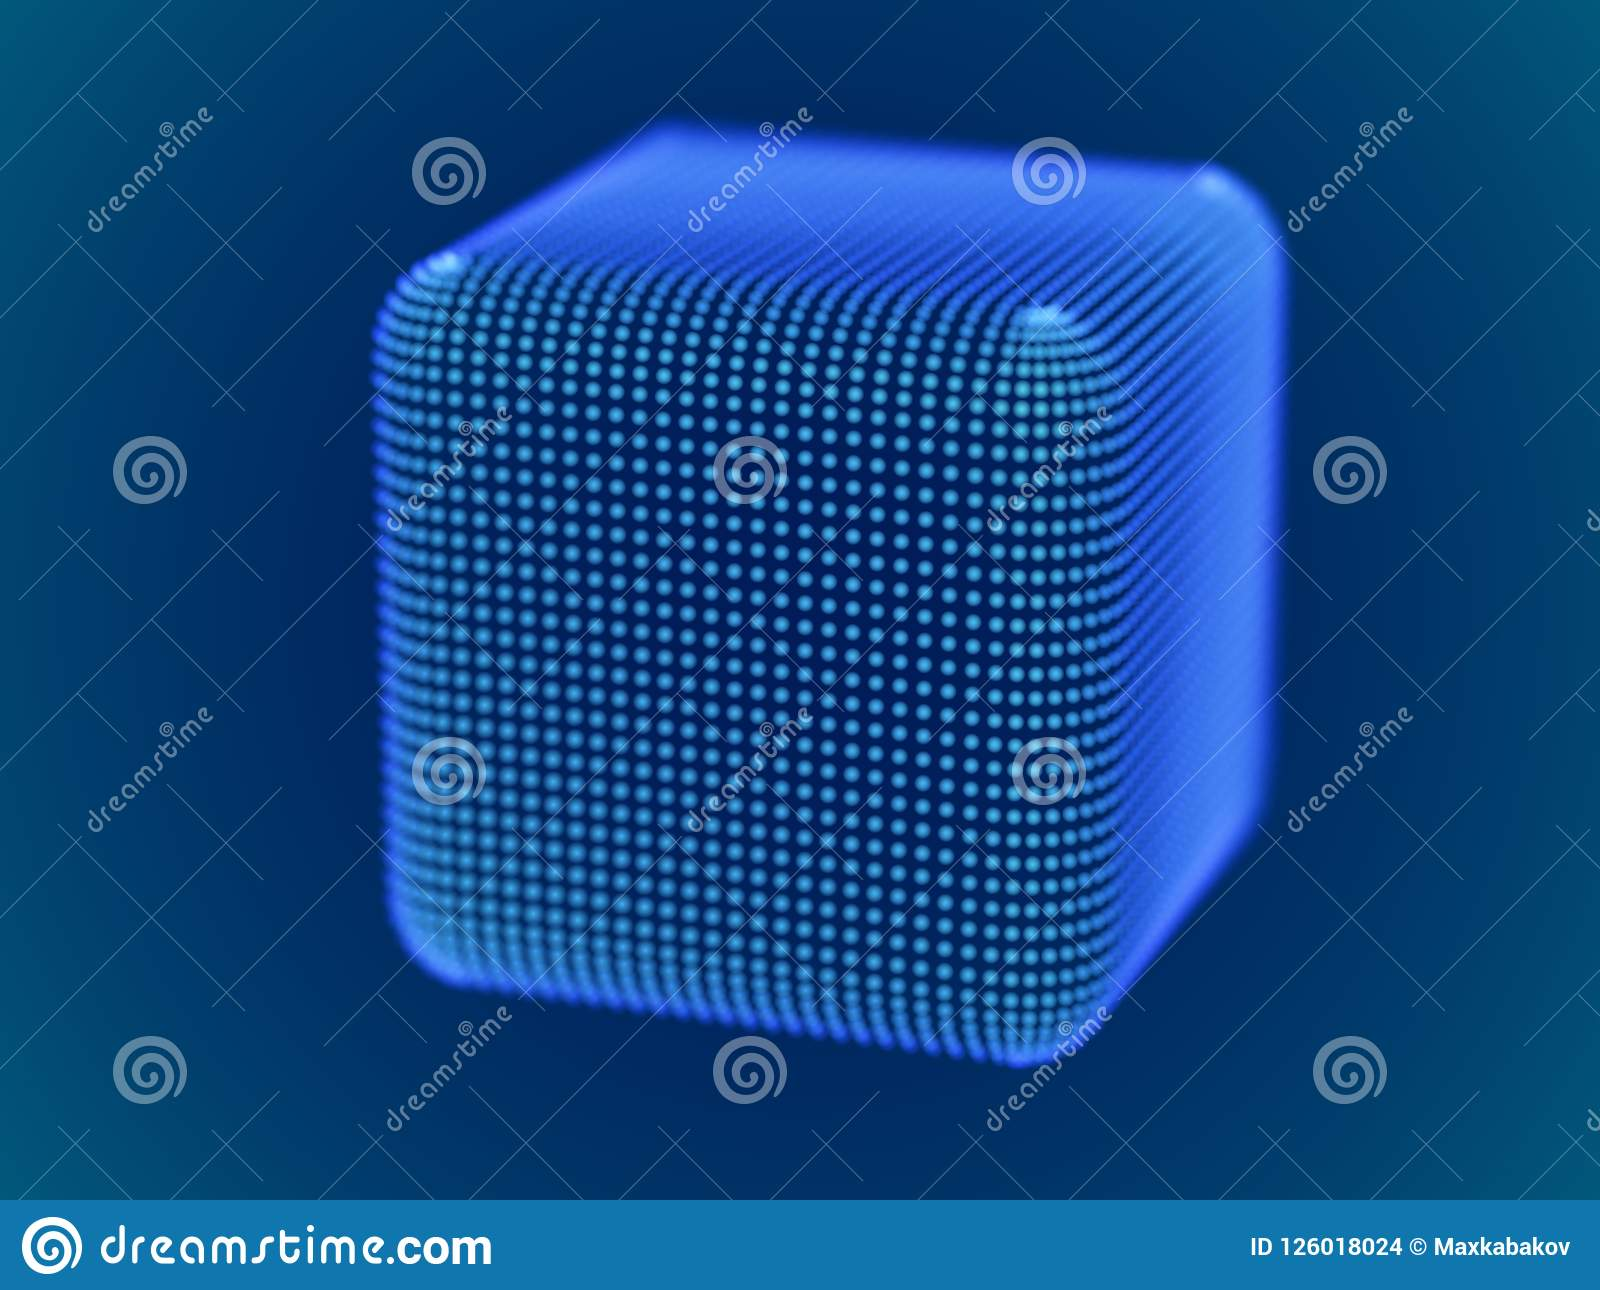 best place differently the best Cyber Space Concept: 3d Digital Cube Consisting Of Glowing ...